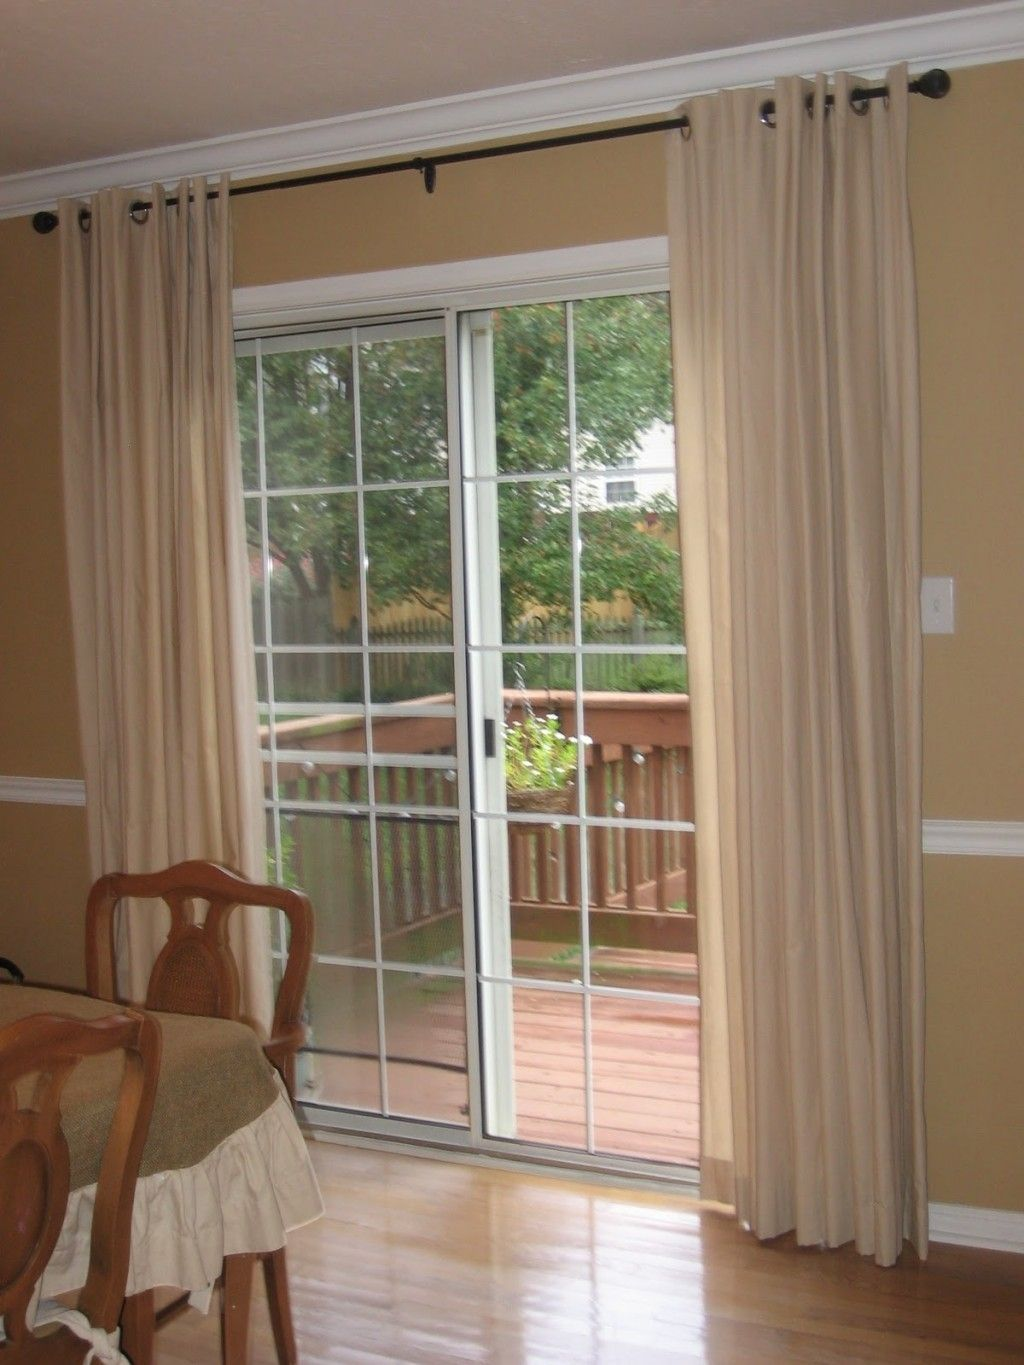 Bed bath and beyond window curtains  curtains to cover a sliding glass door  togethersandia